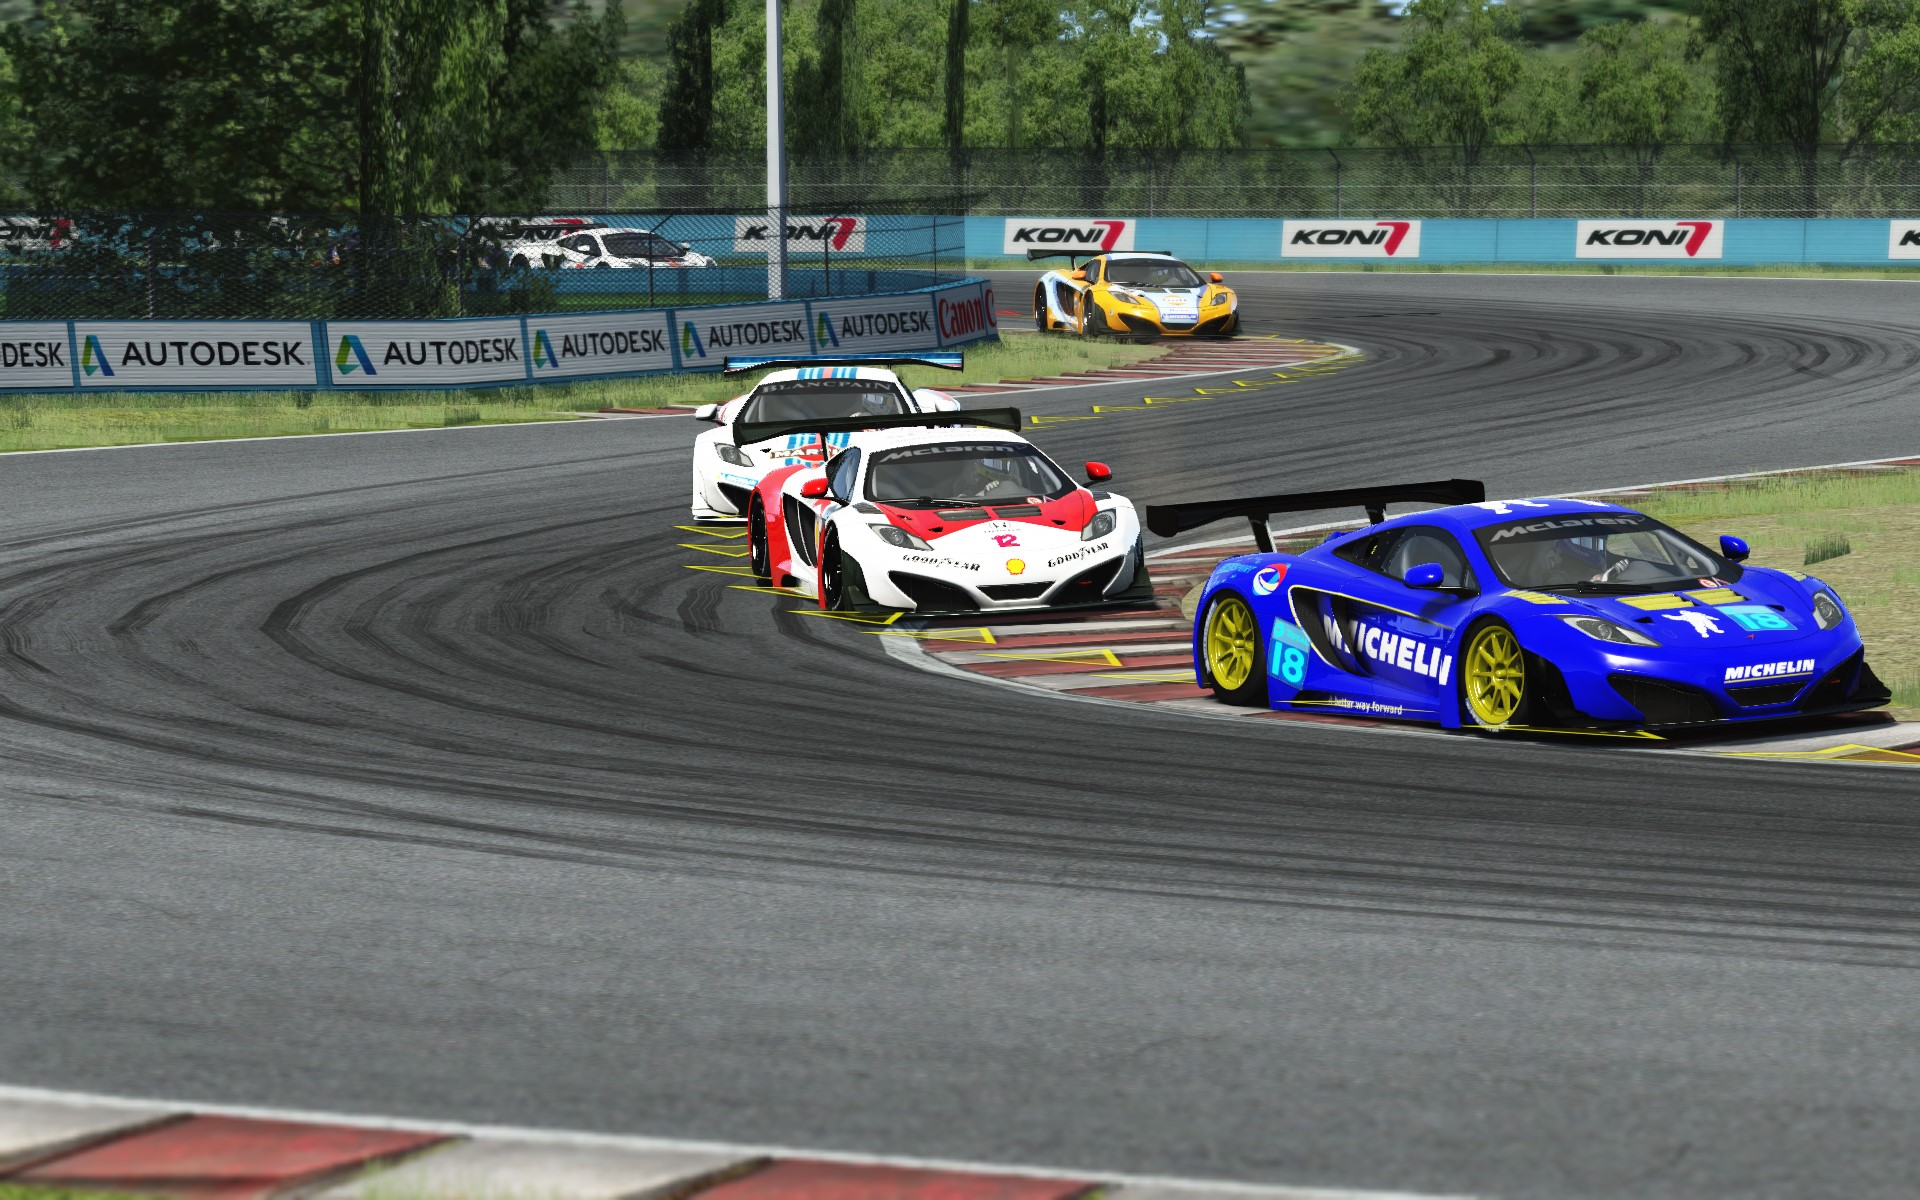 Screenshot_mclaren_mp412c_gt3_sentul_circuit_30-7-115-12-44-58.jpg